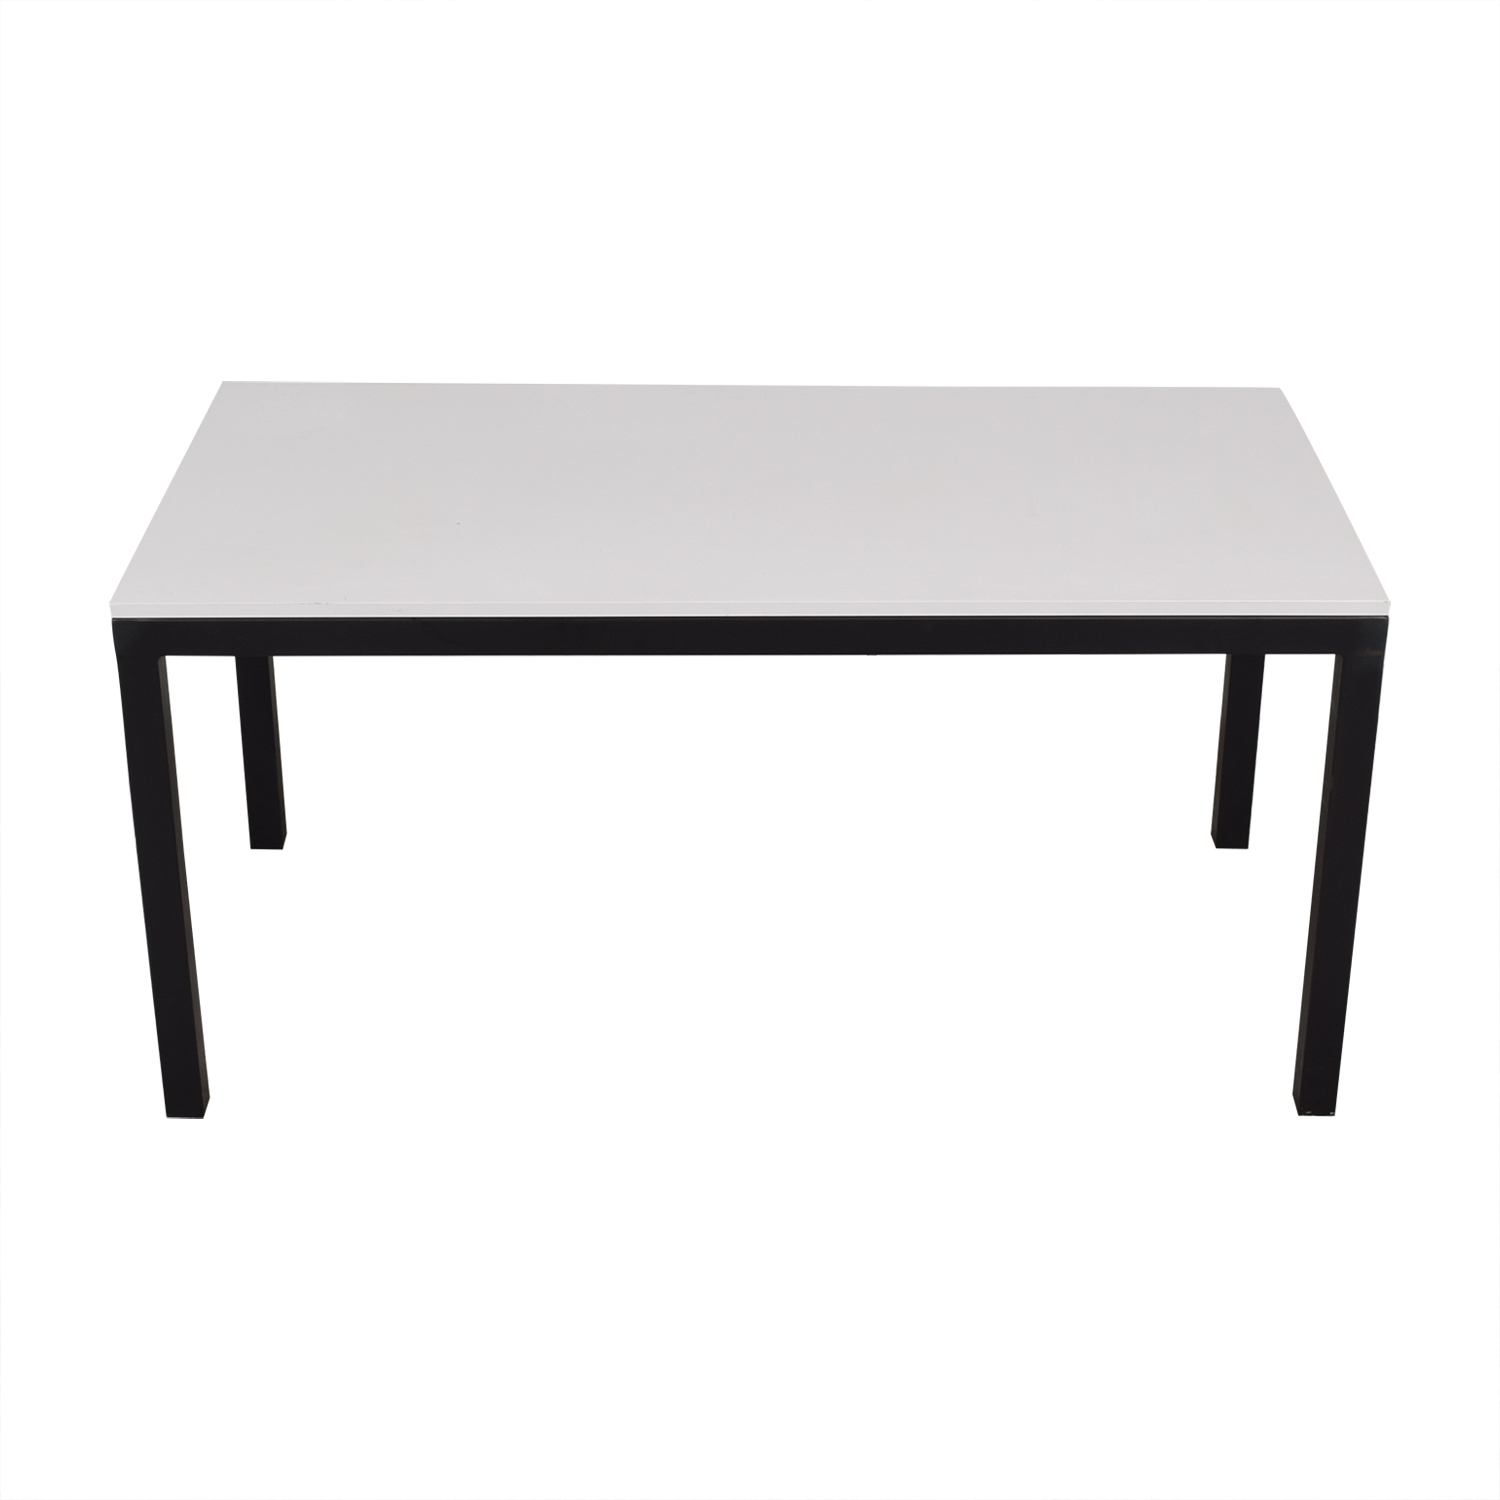 shop Room & Board Room & Board Parson Table online